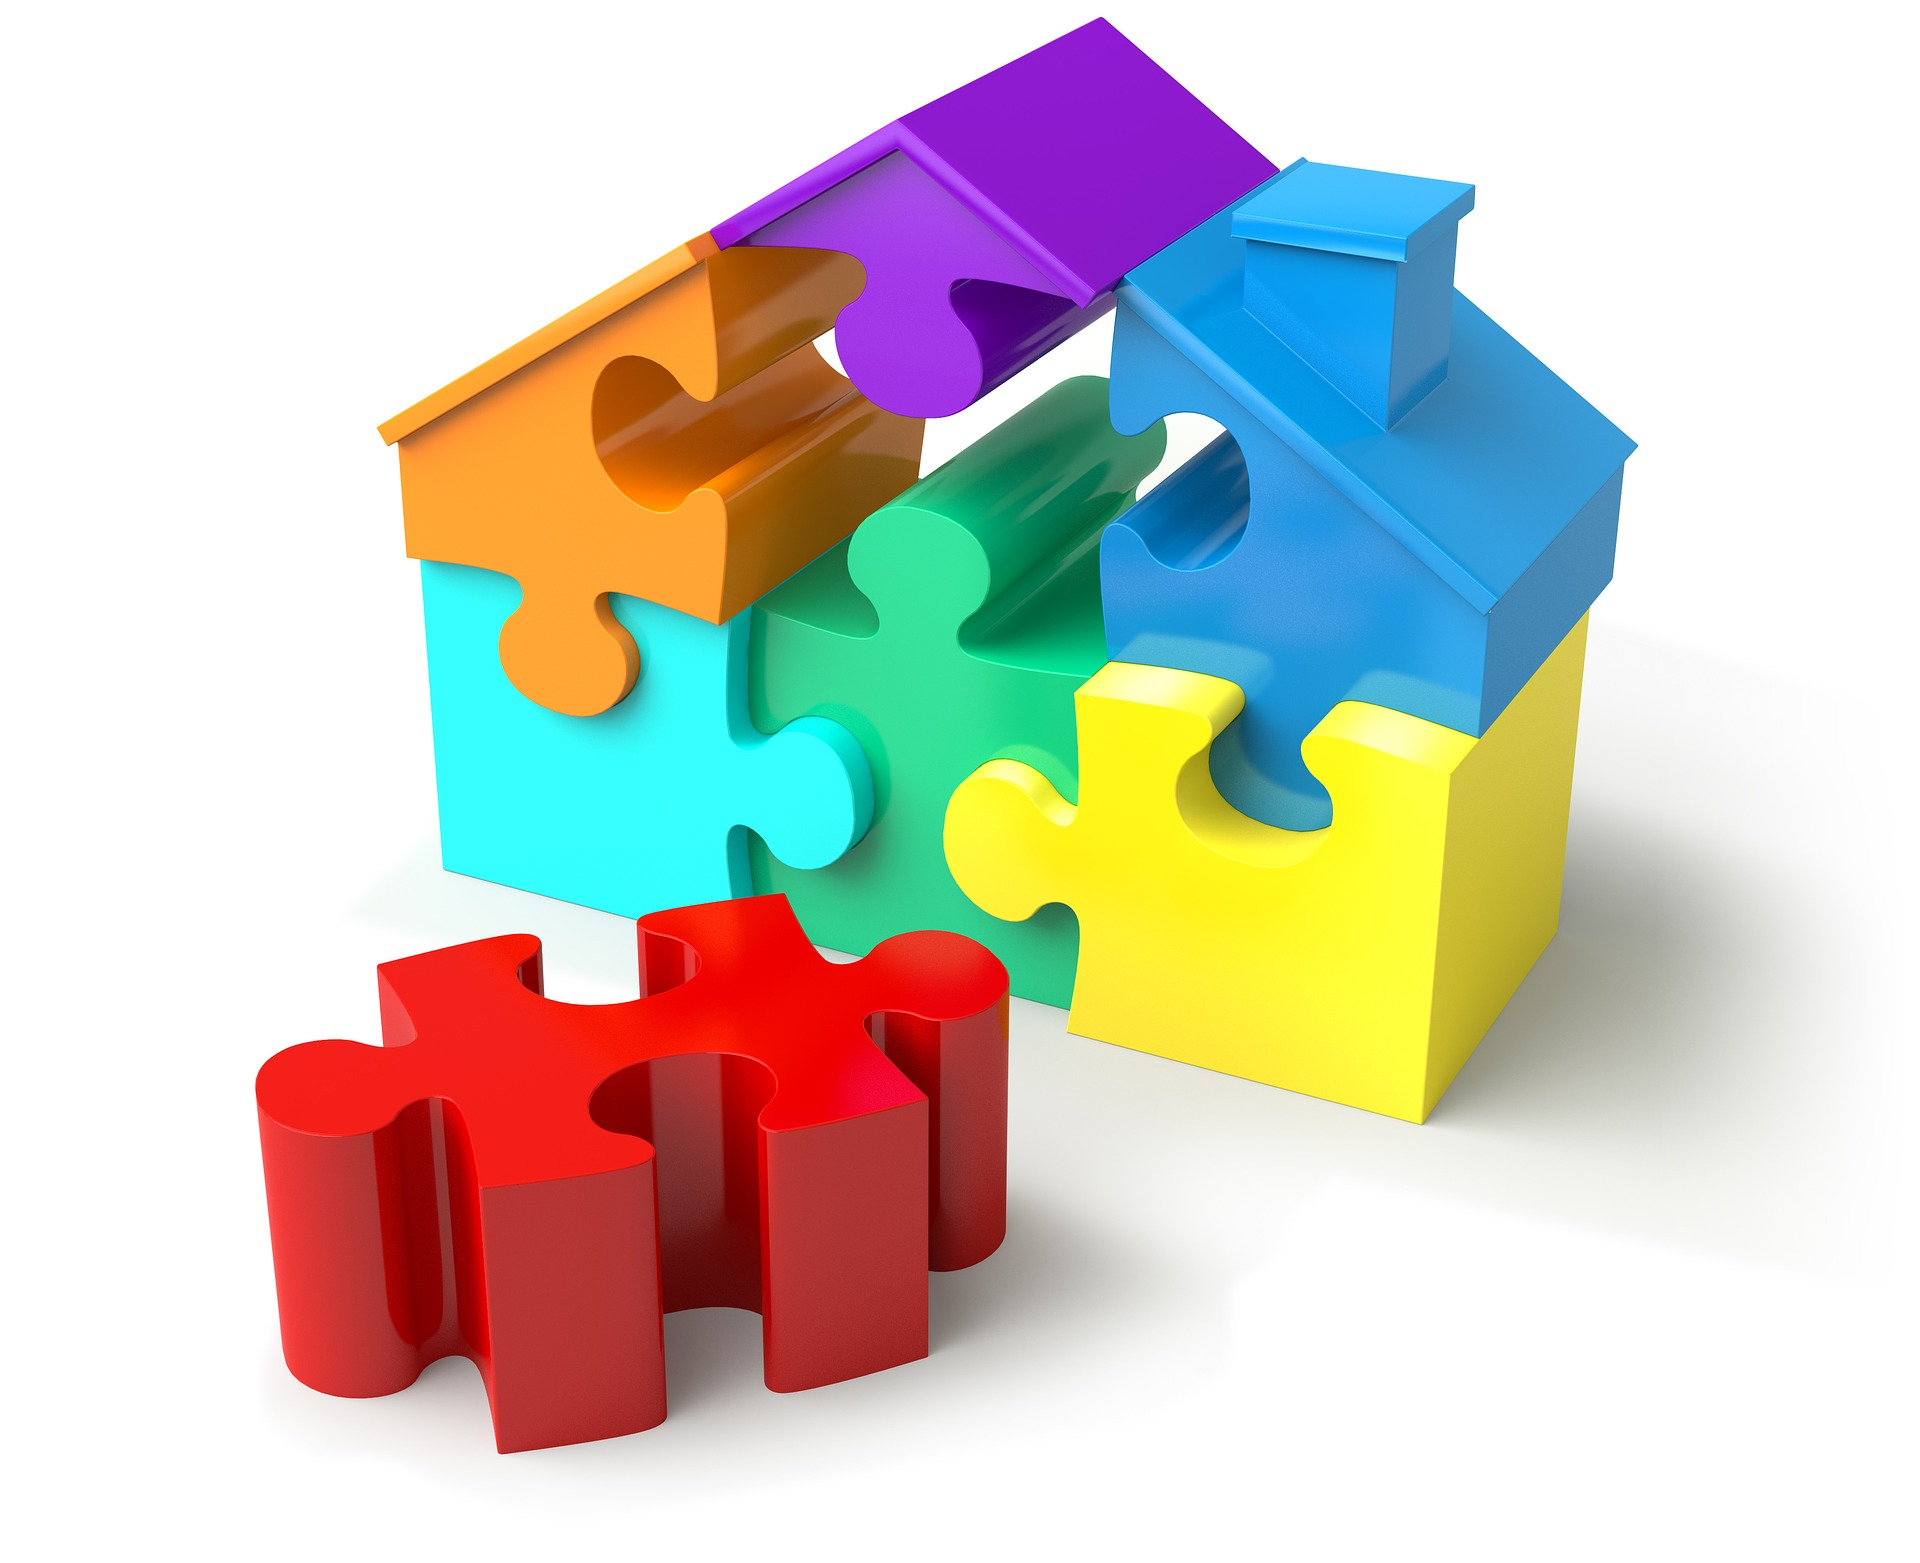 Puzzle pieces that look like a house